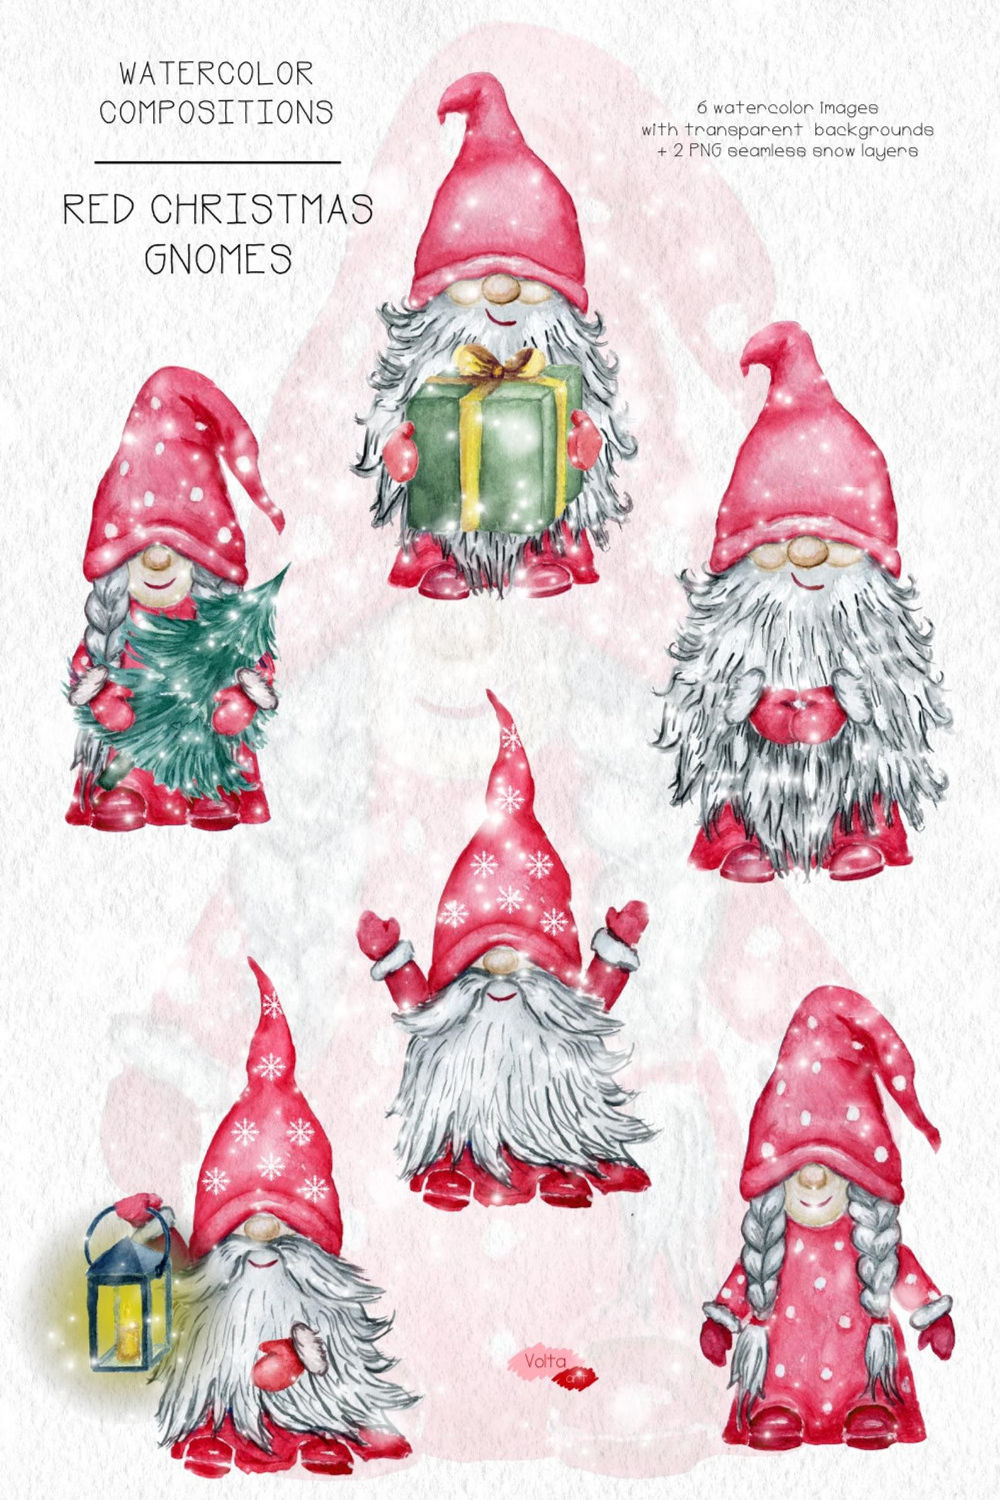 Watercolor Christmas Gnomes Png Winter Red Dwarves Yule Etsy In 2021 Christmas Watercolor Christmas Gnome Clay Christmas Decorations